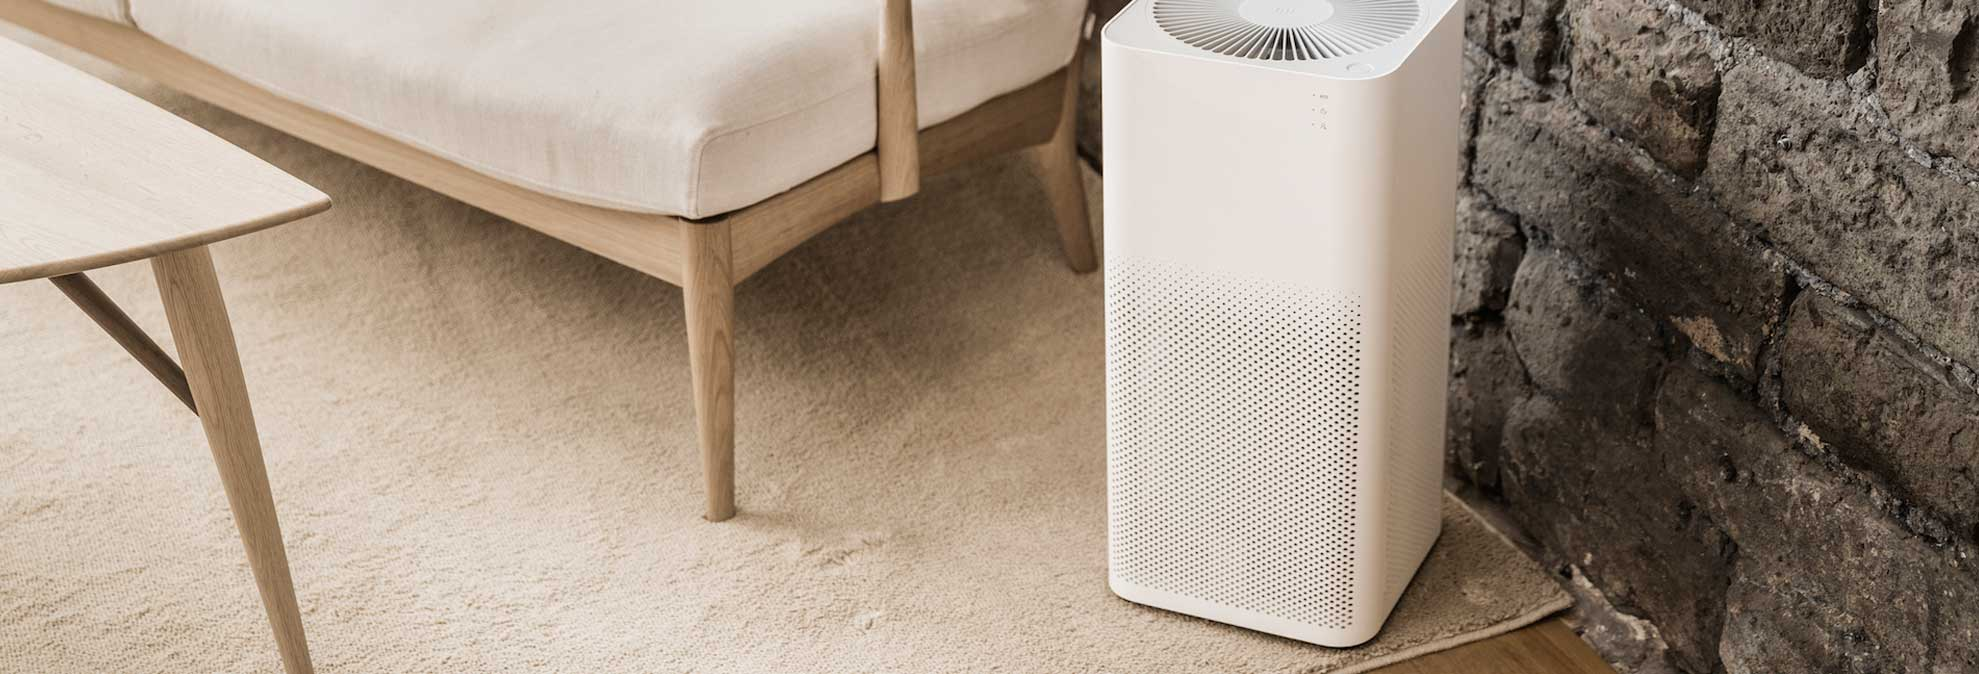 . Best Air Purifier Buying Guide   Consumer Reports